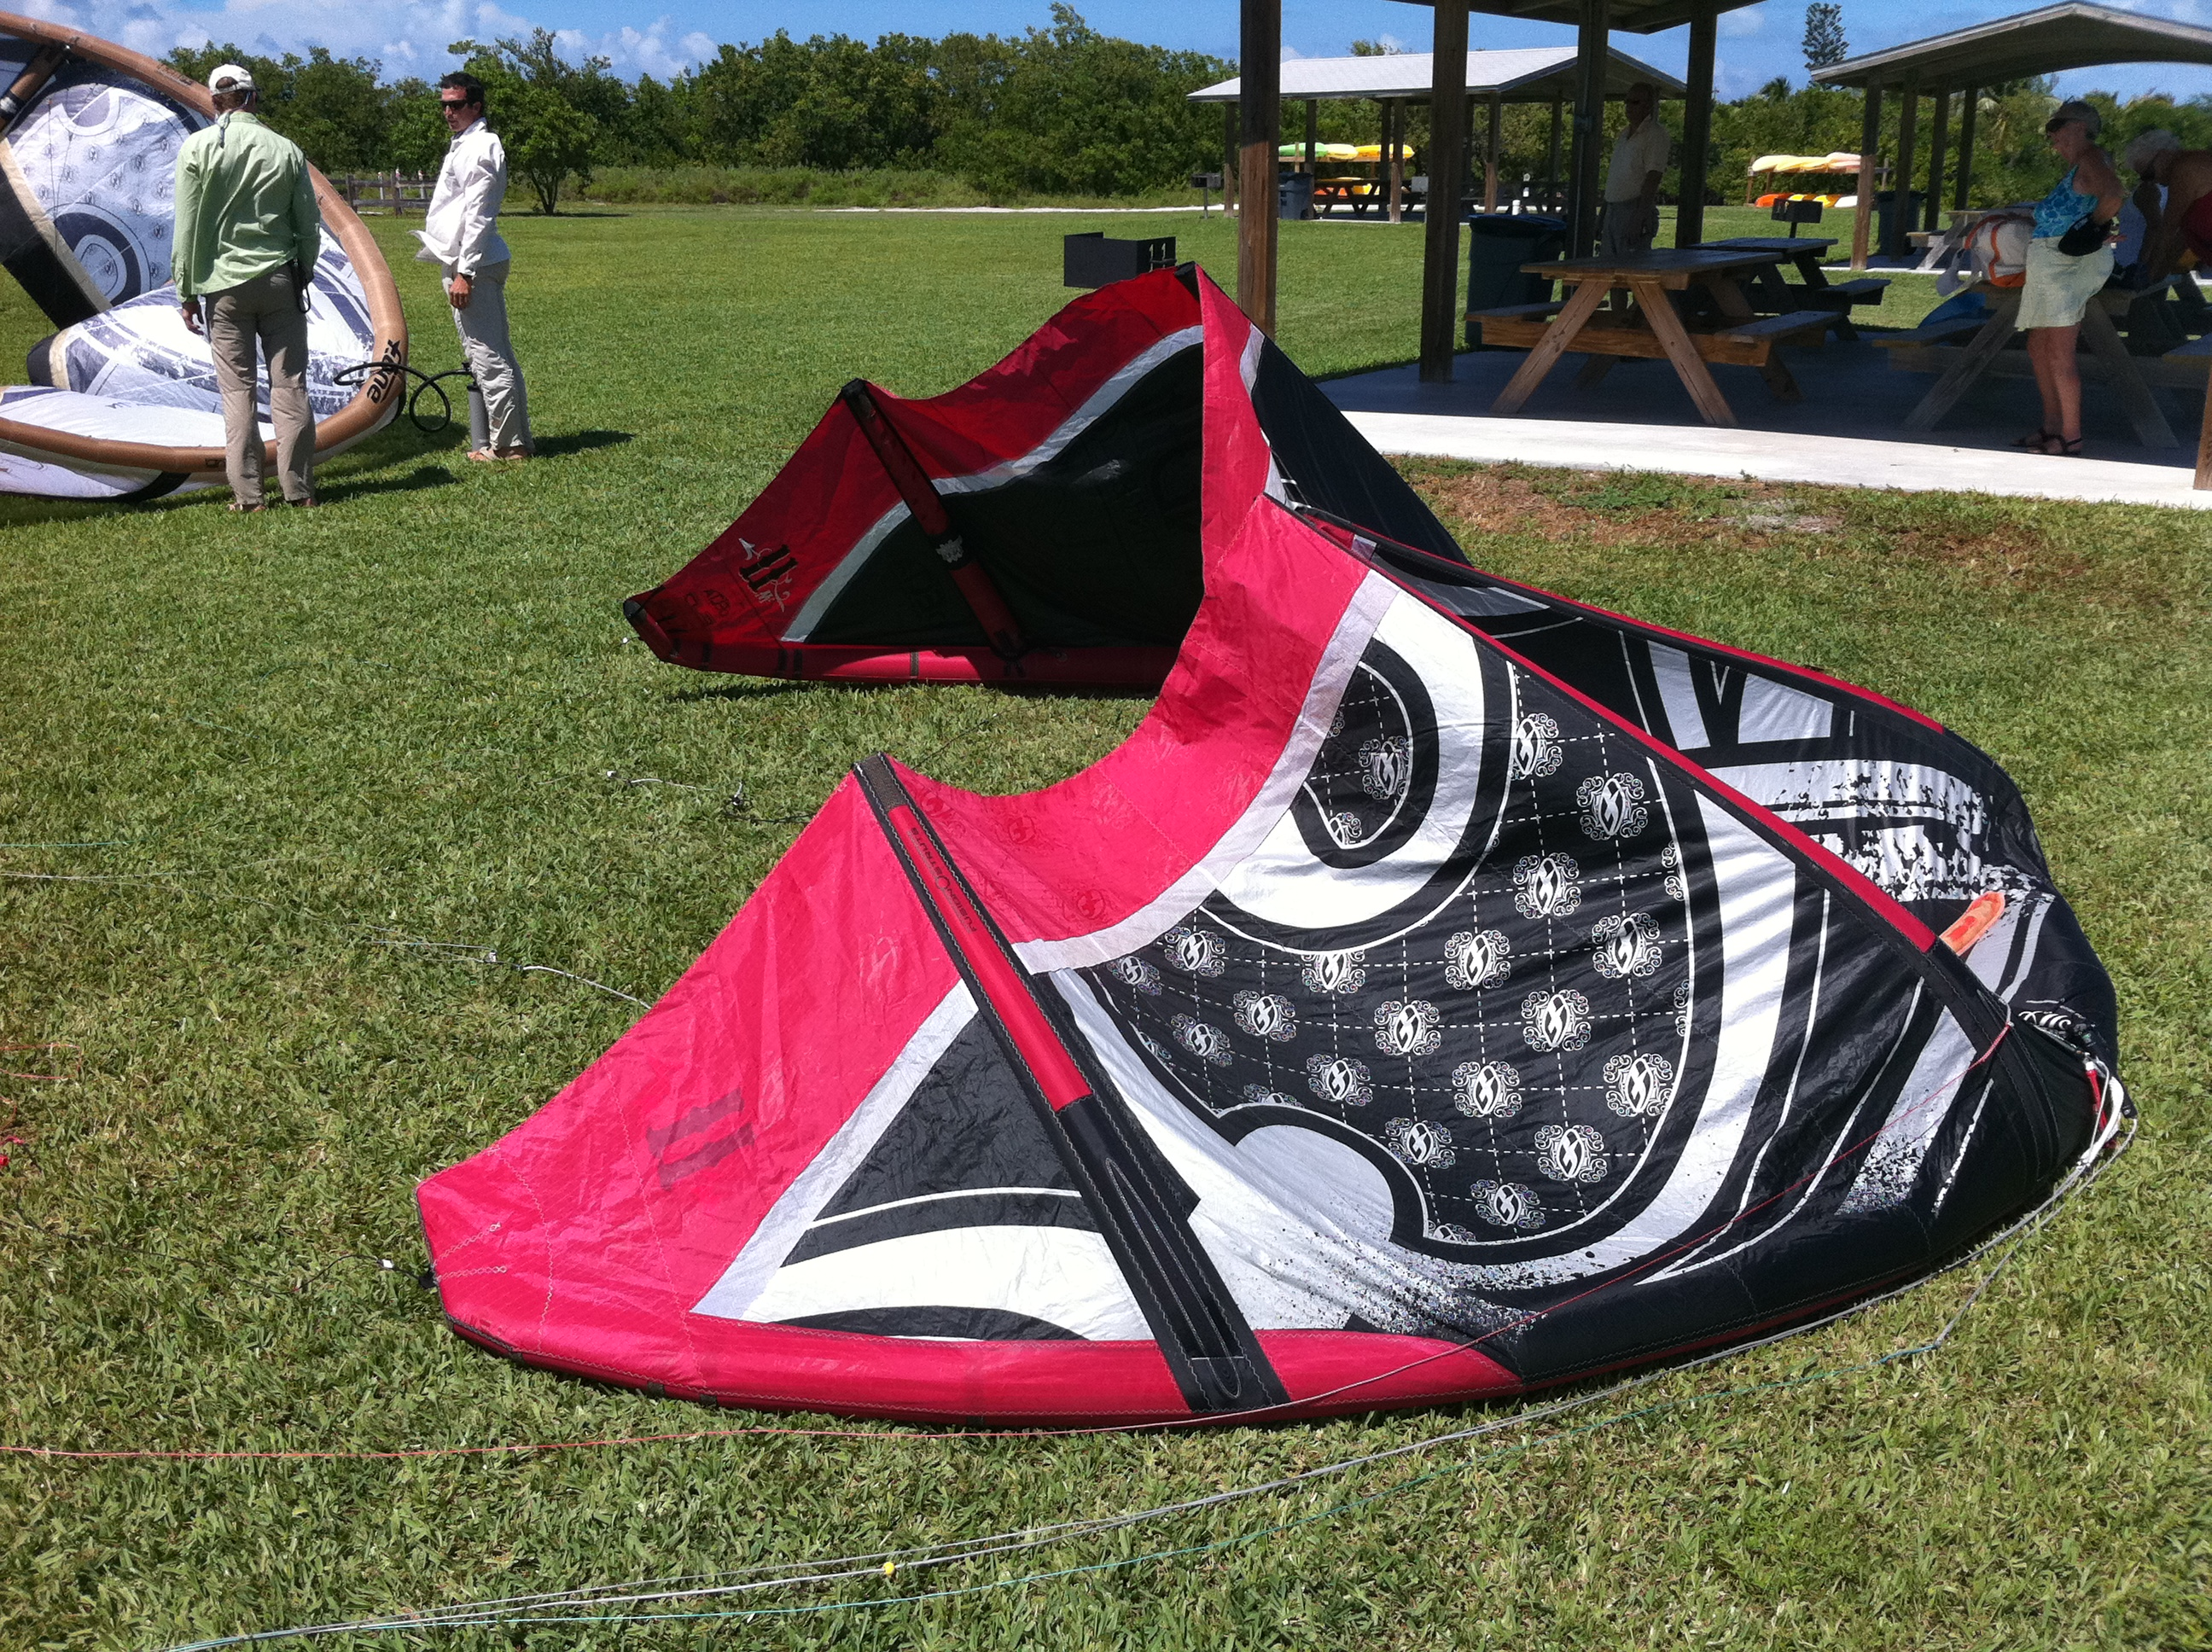 Some of the best kites on the market, F-One